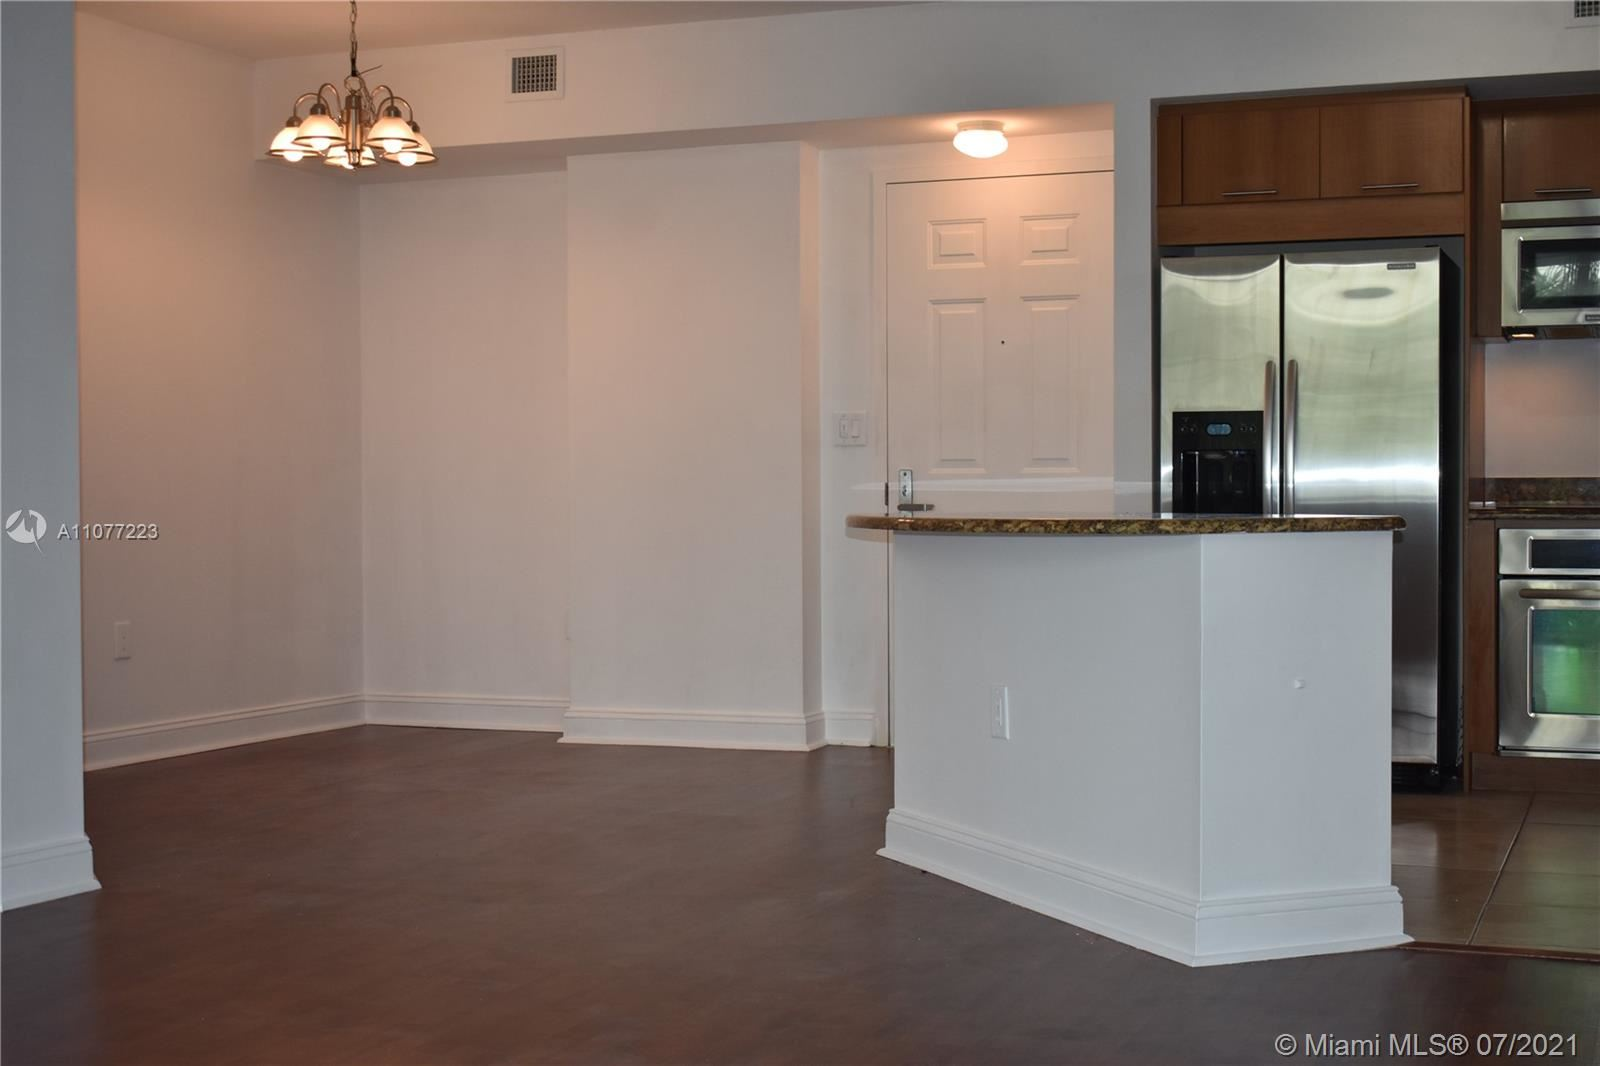 Photo of 510 NW 84th Ave #420, Plantation, FL 33324 (MLS # A11077223)